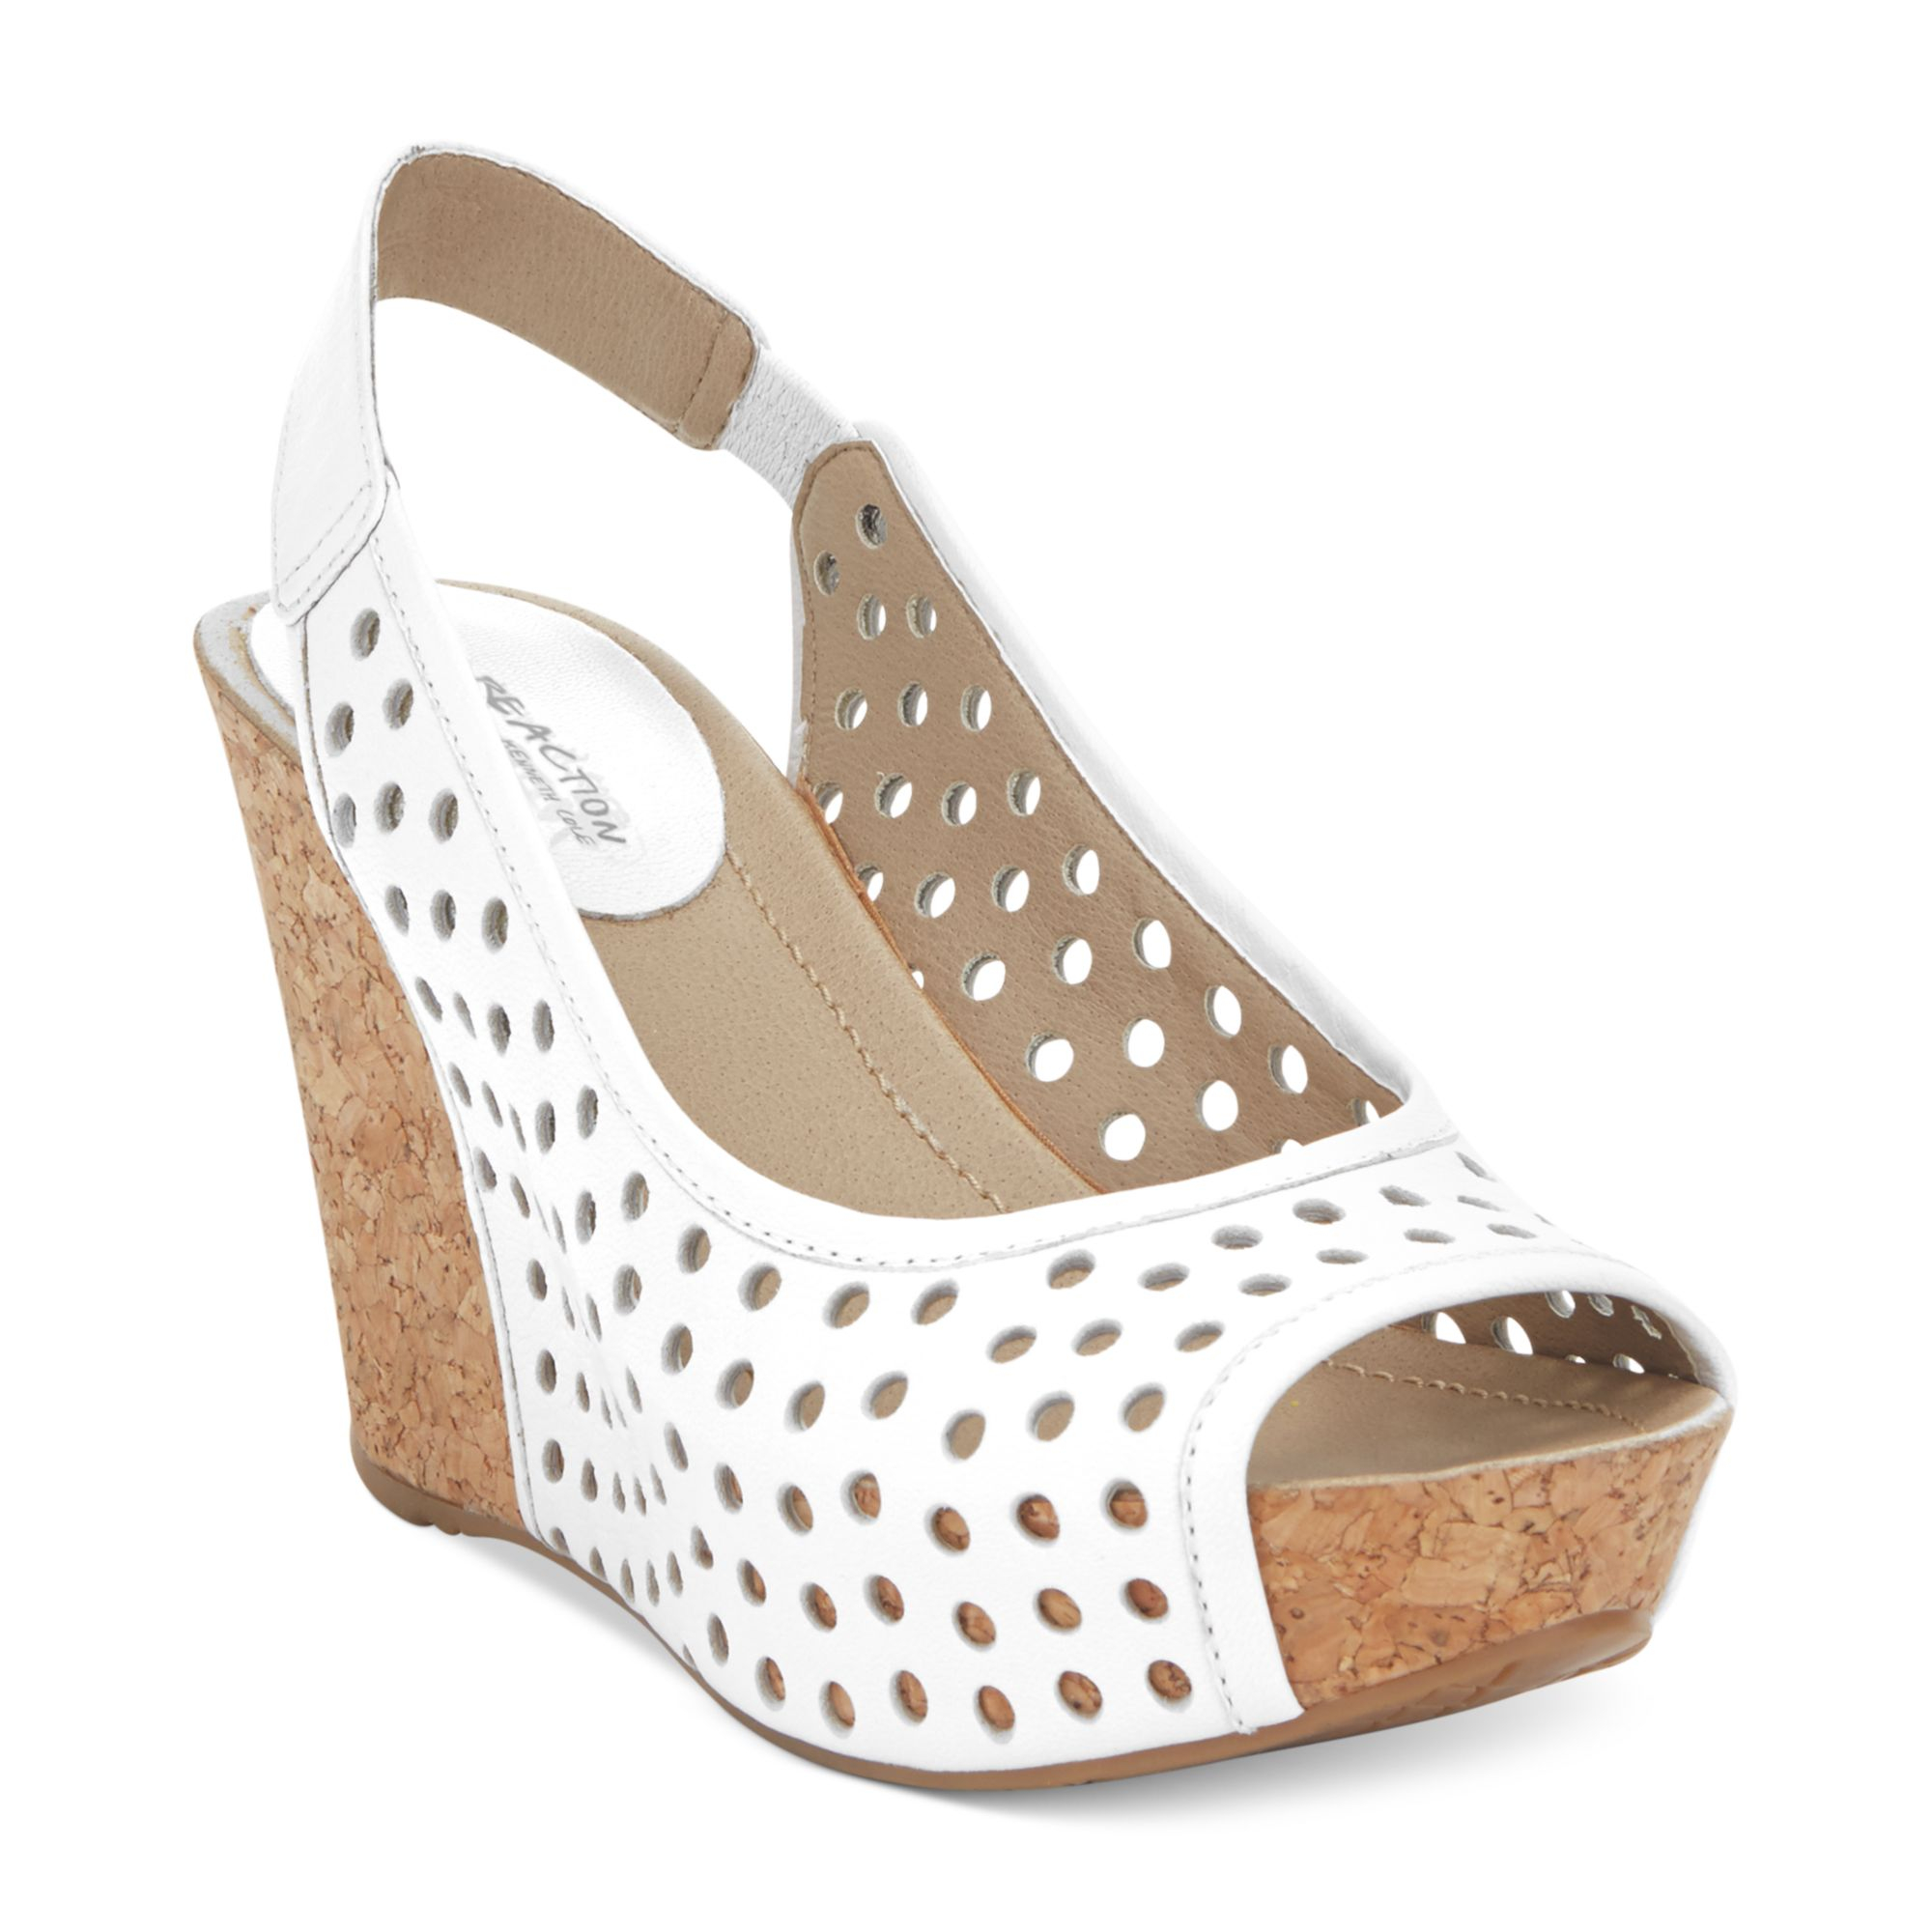 e4a71fc45e6d5 Lyst - Kenneth Cole Reaction Soley Roller Platform Wedge Sandals in ...